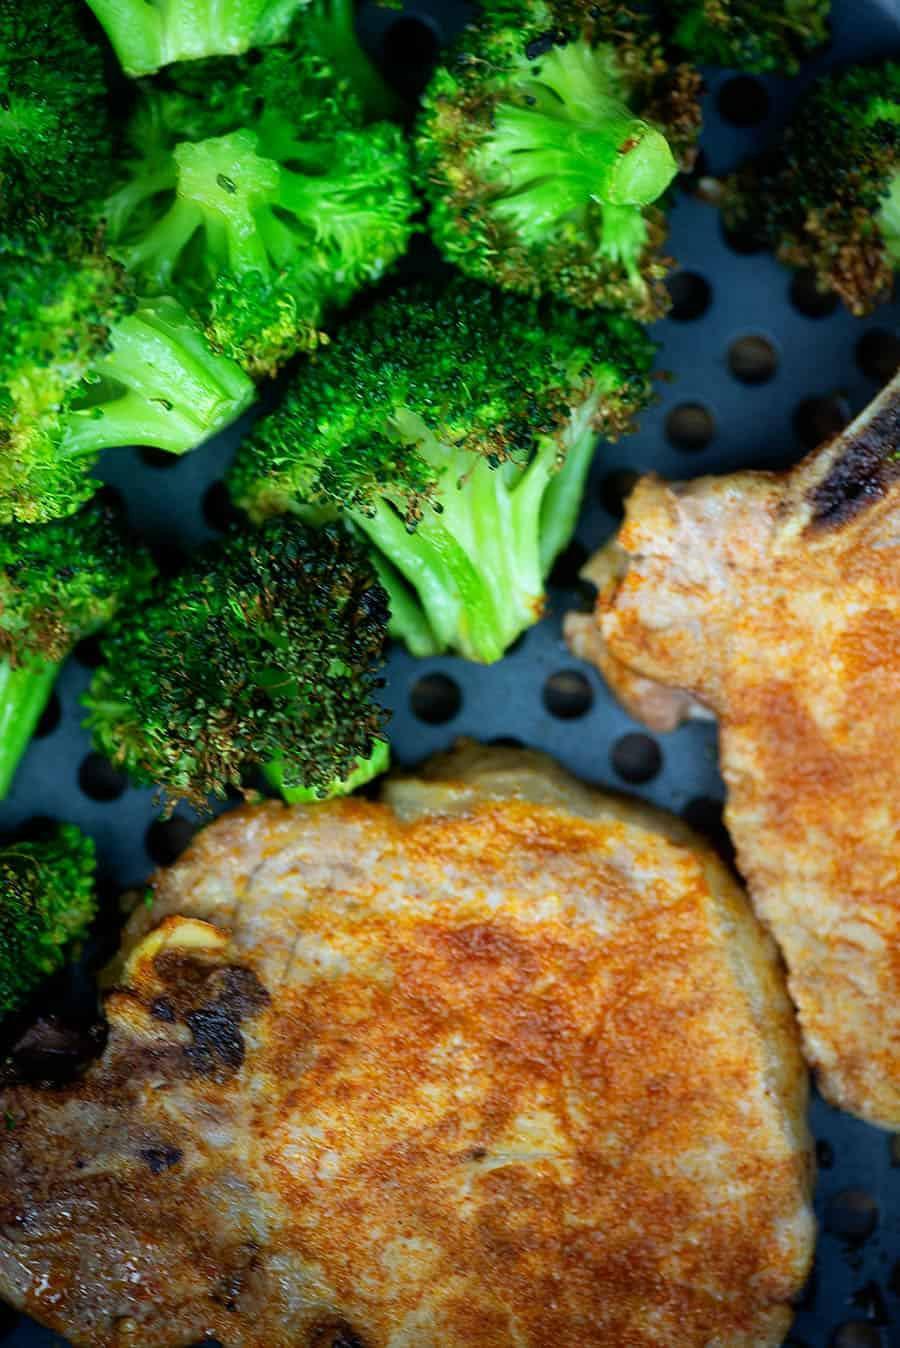 Air Fryer Pork Chops and Broccoli! Perfectly juicy pork chops and roasted broccoli all at once! #airfryer #porkchops #broccoli #easy